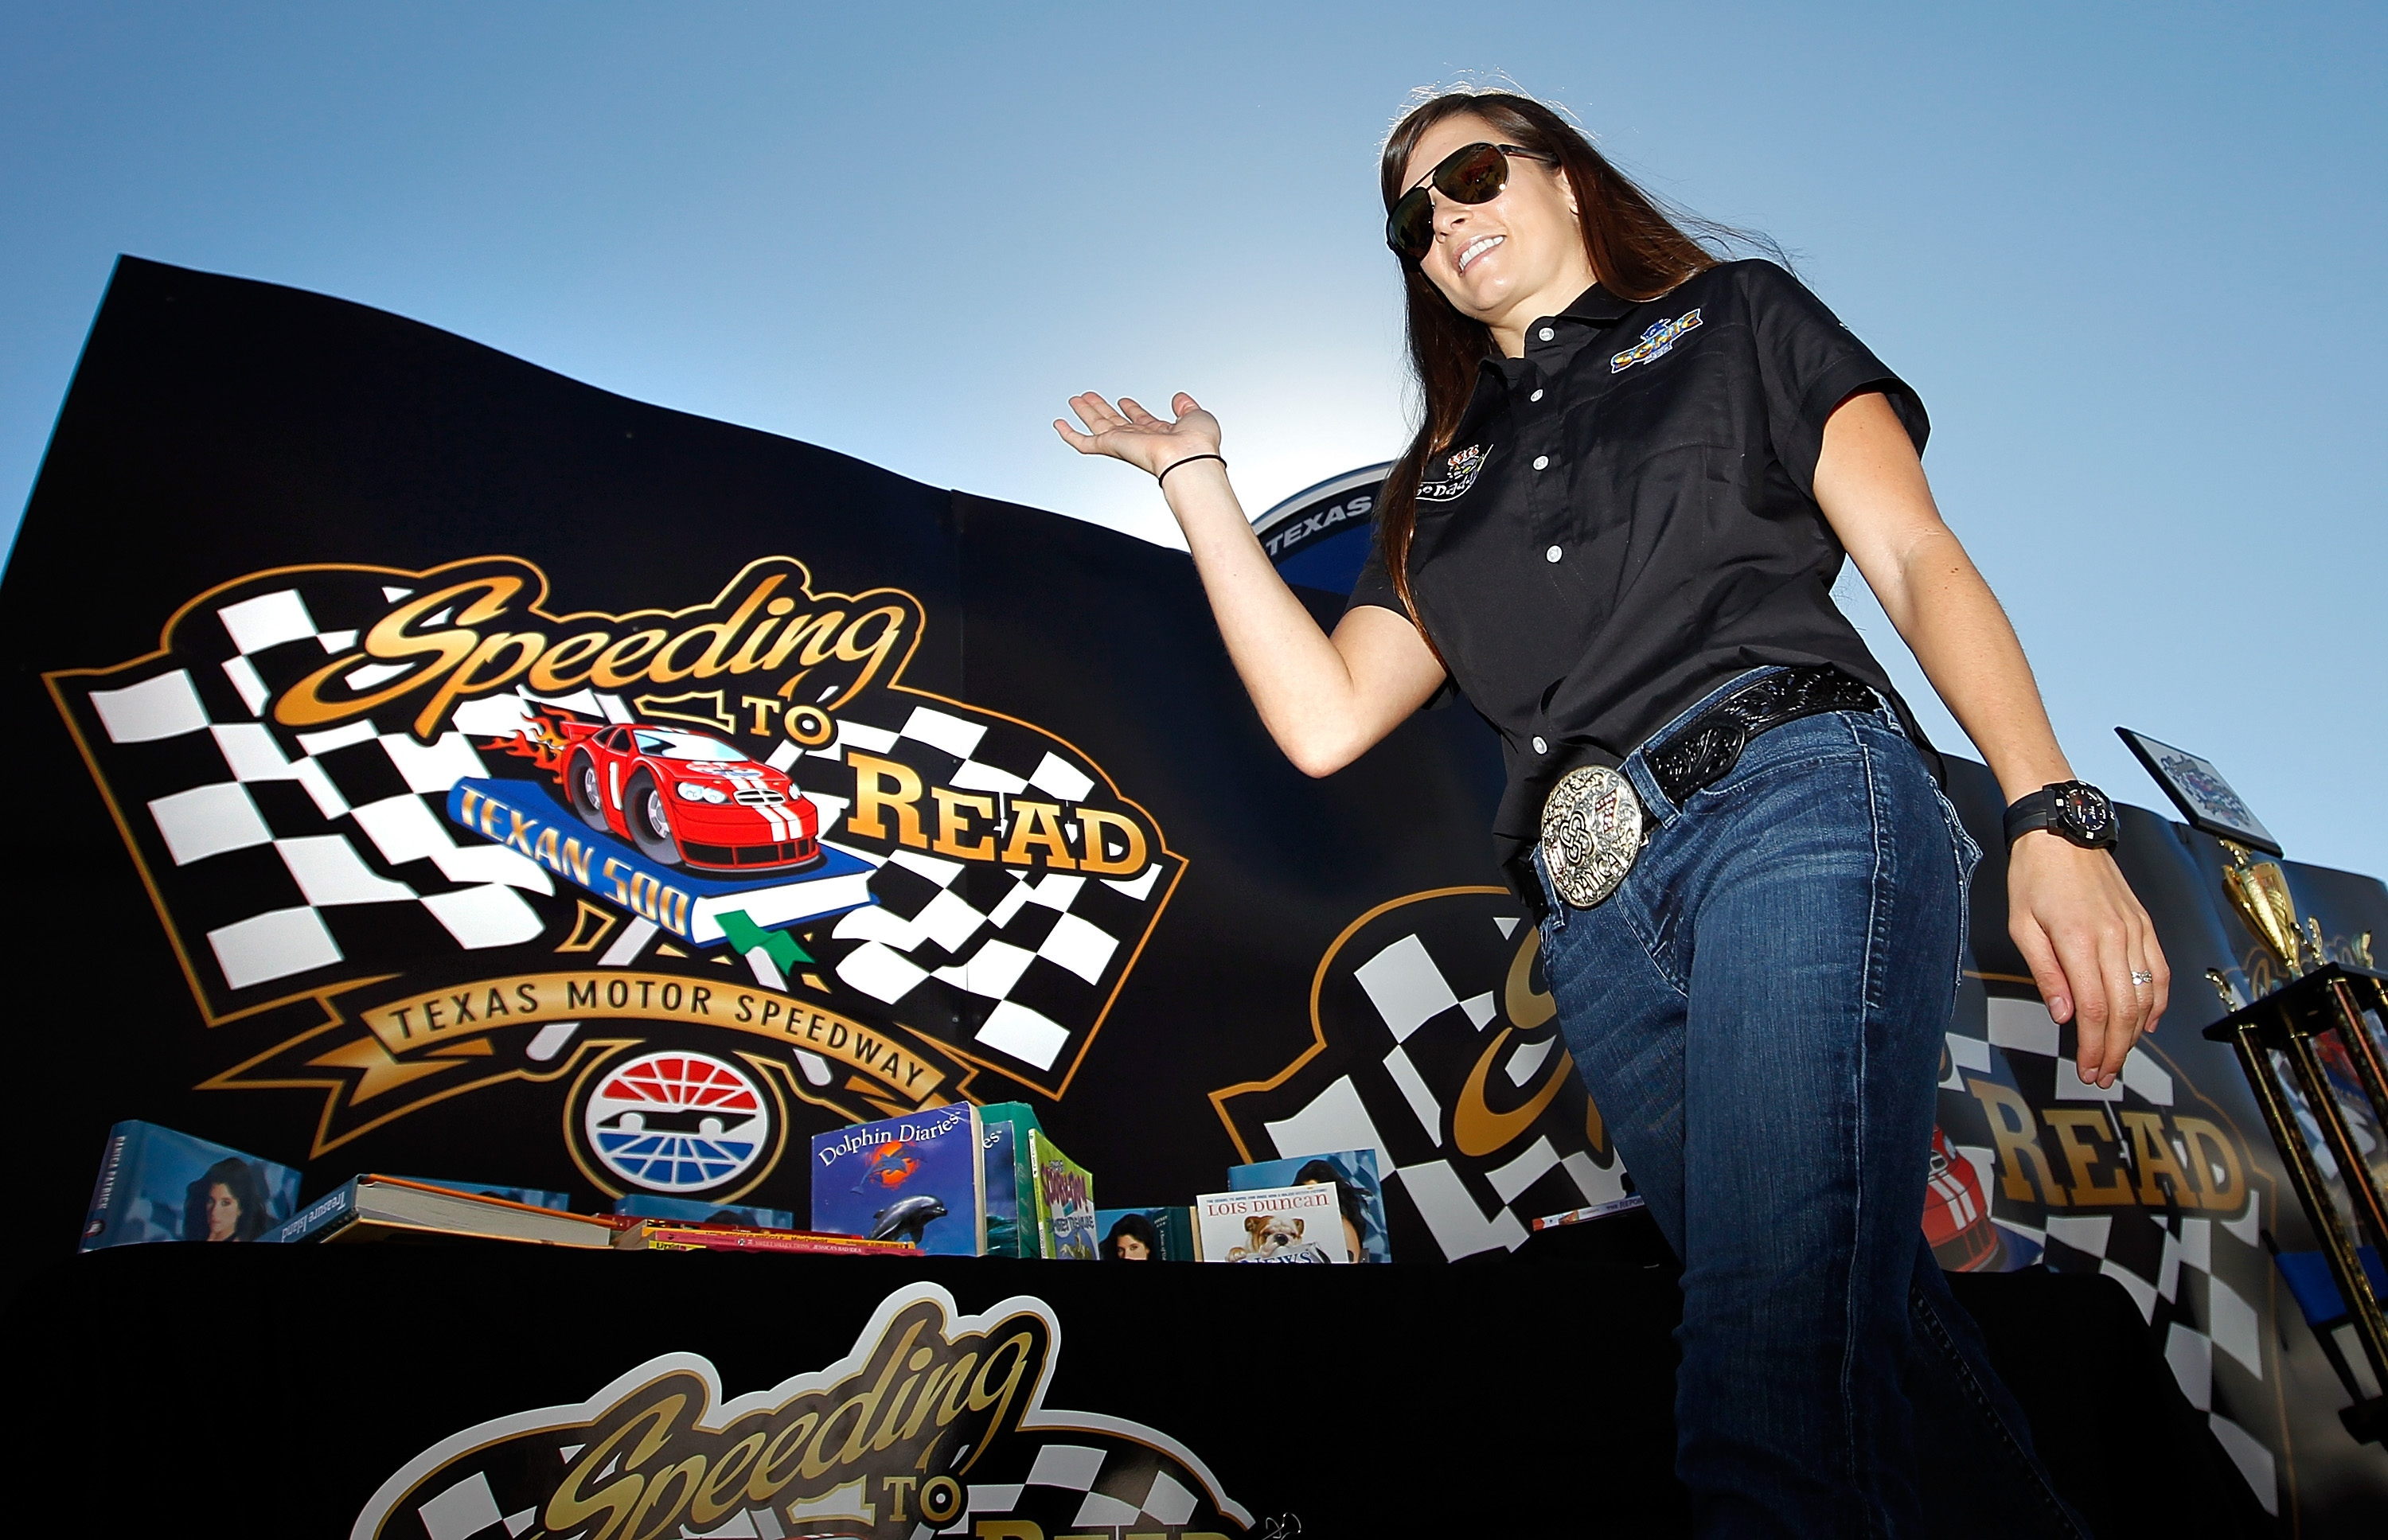 Danica Patrick is comfortable in NASCAR's more 'country' environment. (Getty Images)